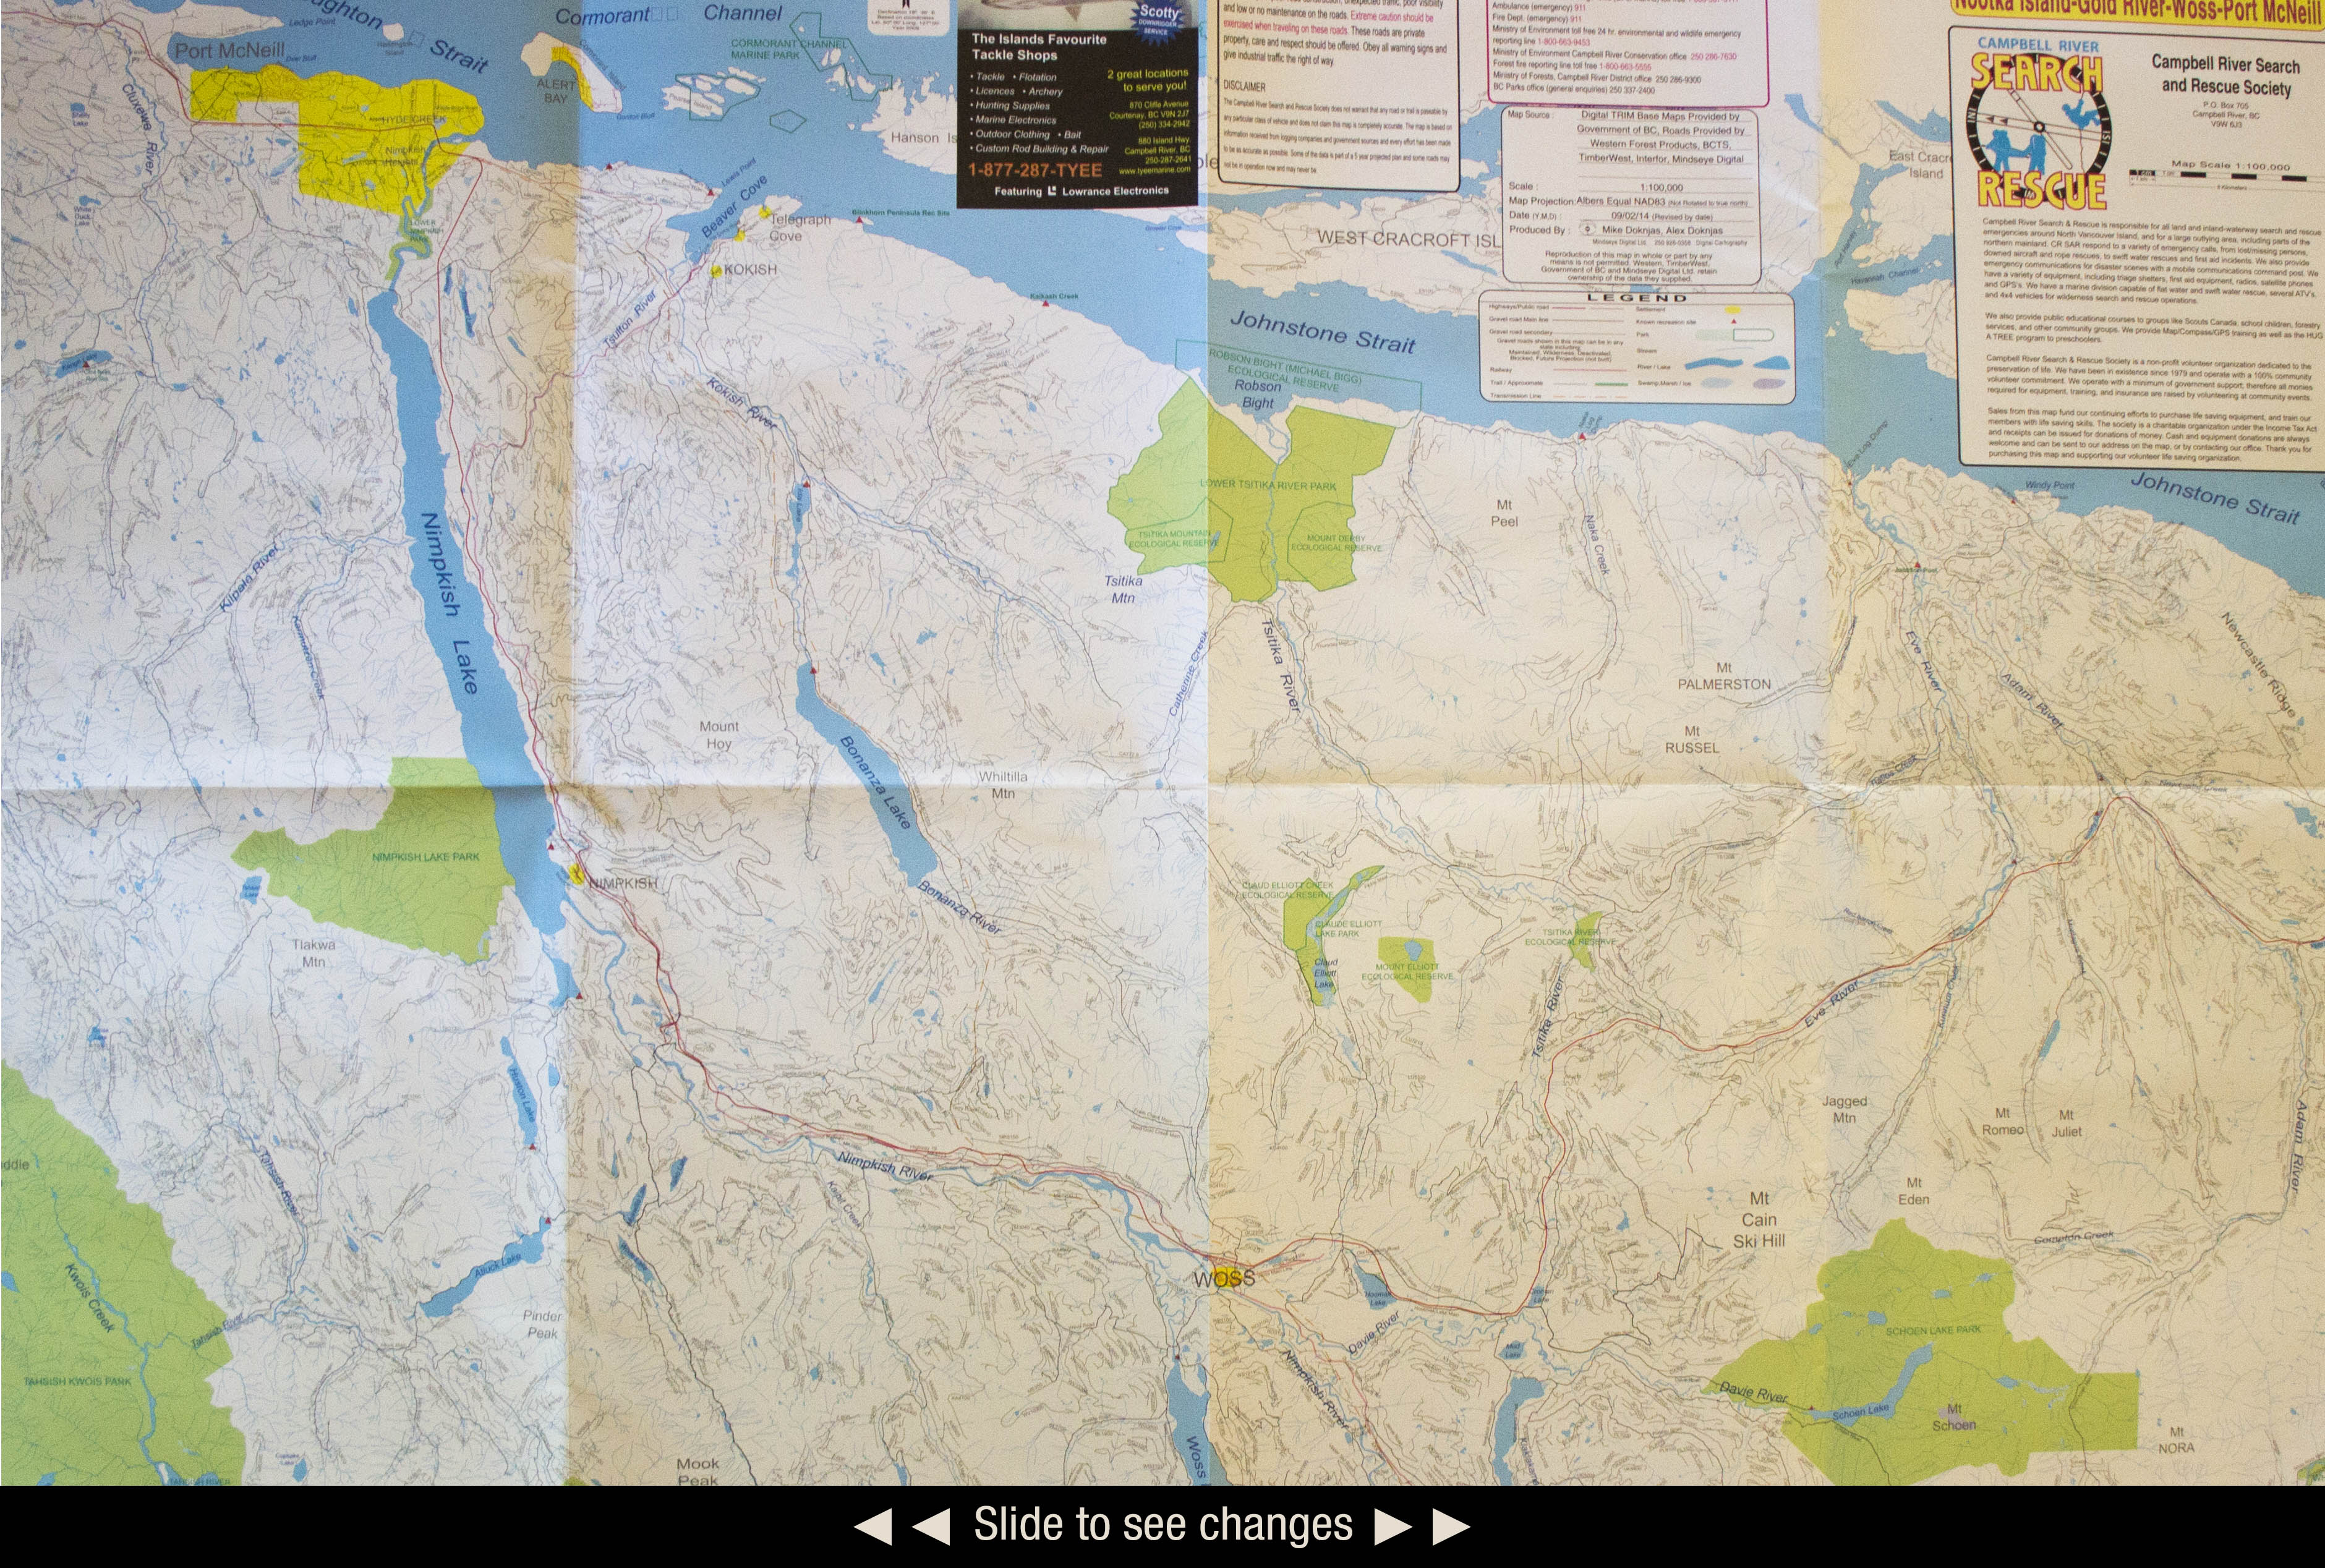 Map Sales Campbell River Search and Rescue